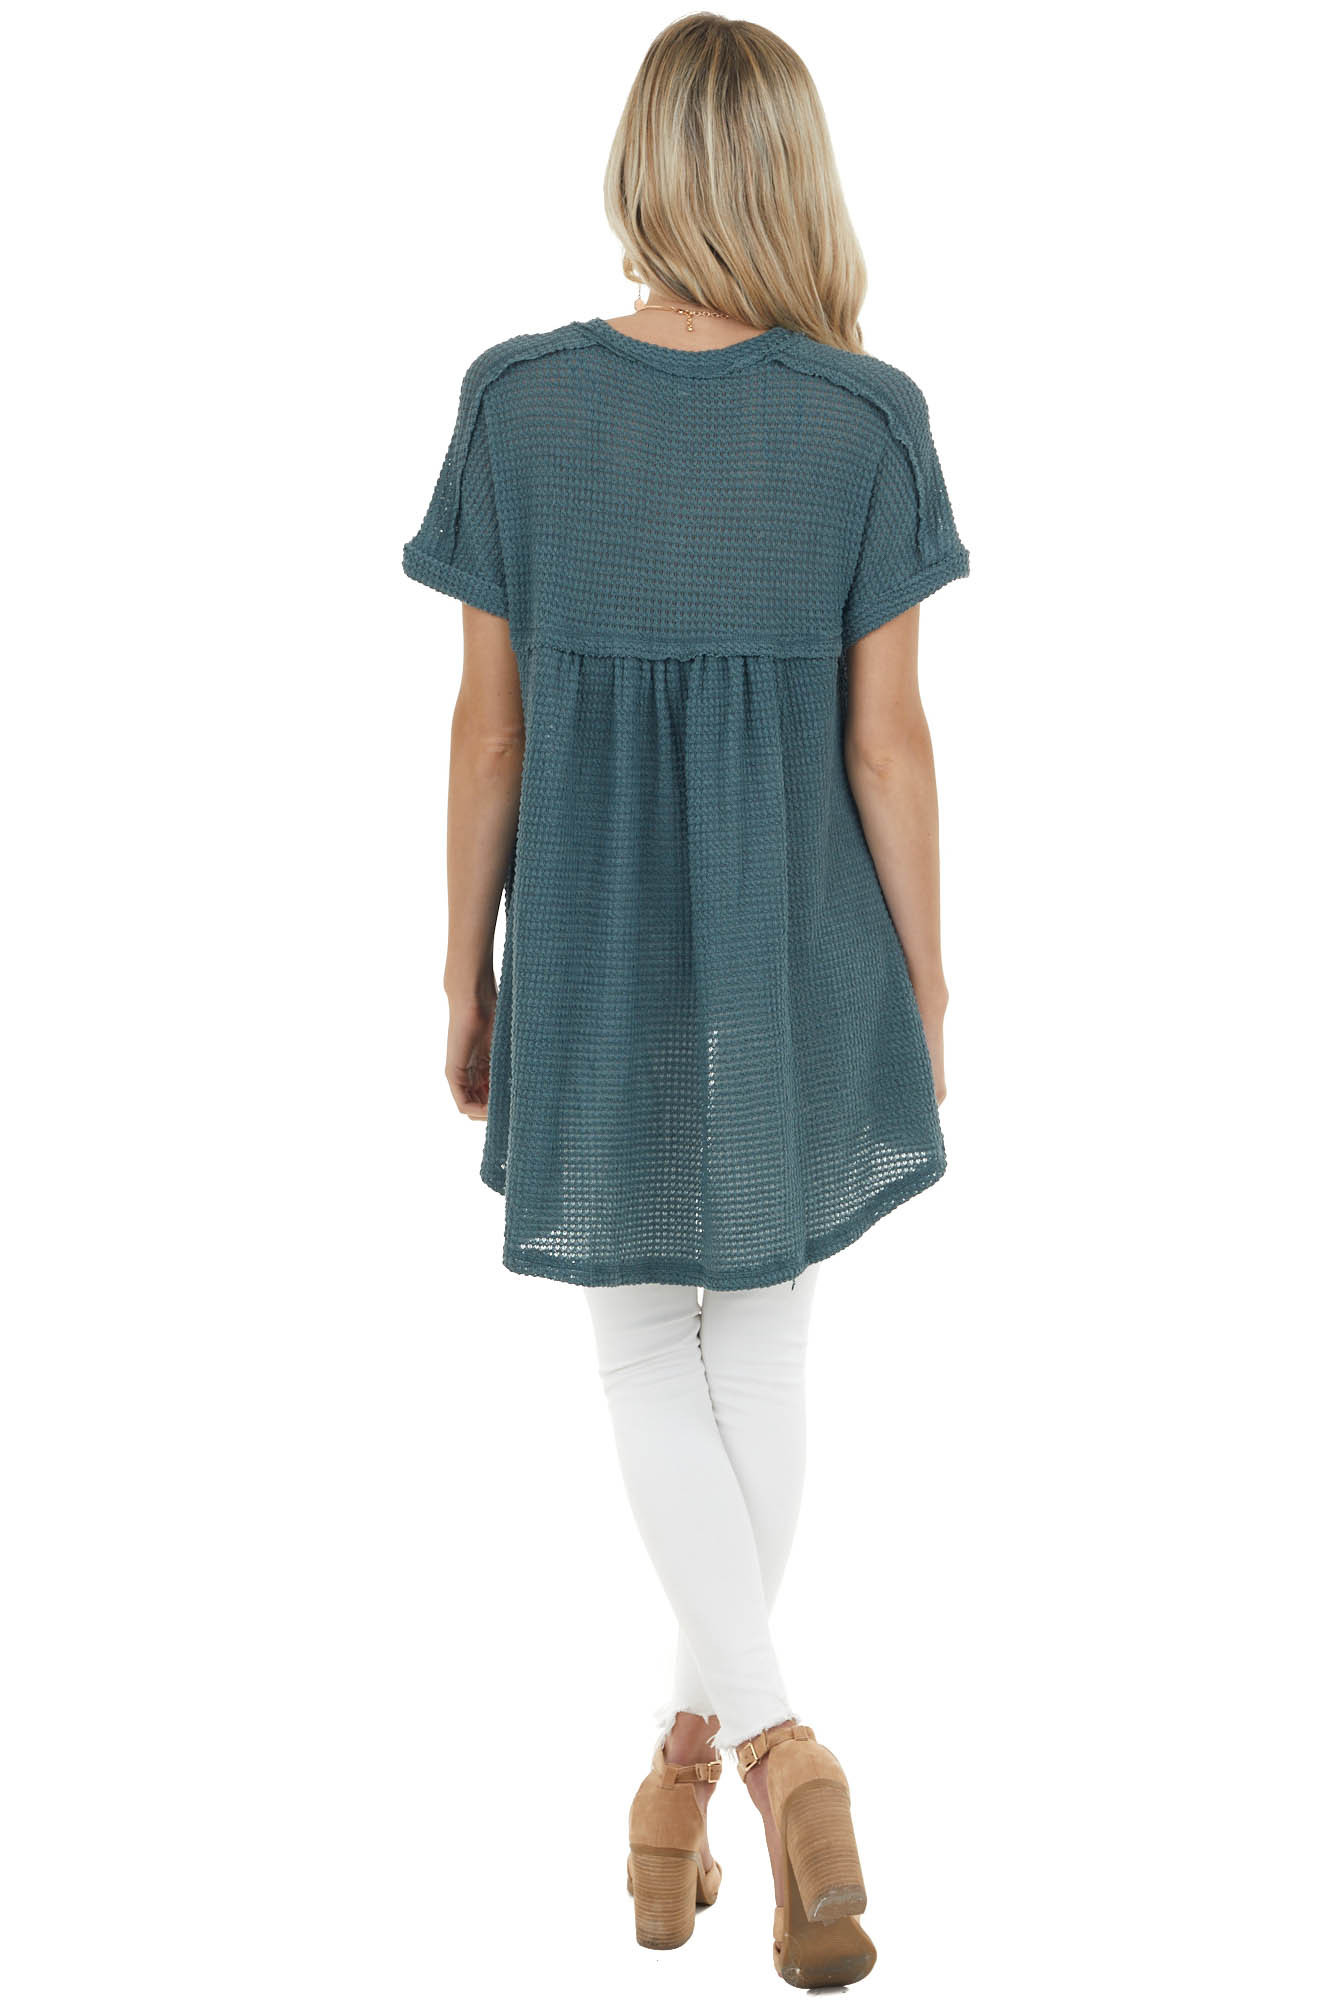 Spruce Short Sleeve Waffle Knit Top with Button Detail